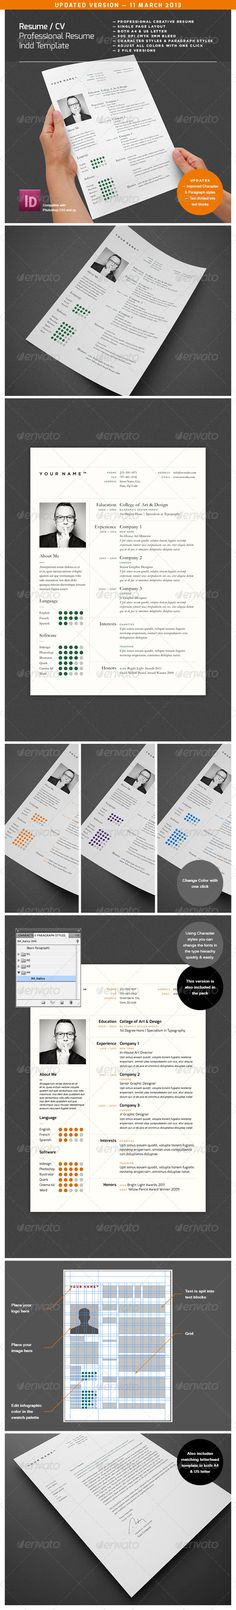 Portfolio Professional Resume Design Best Template Cv Graphic